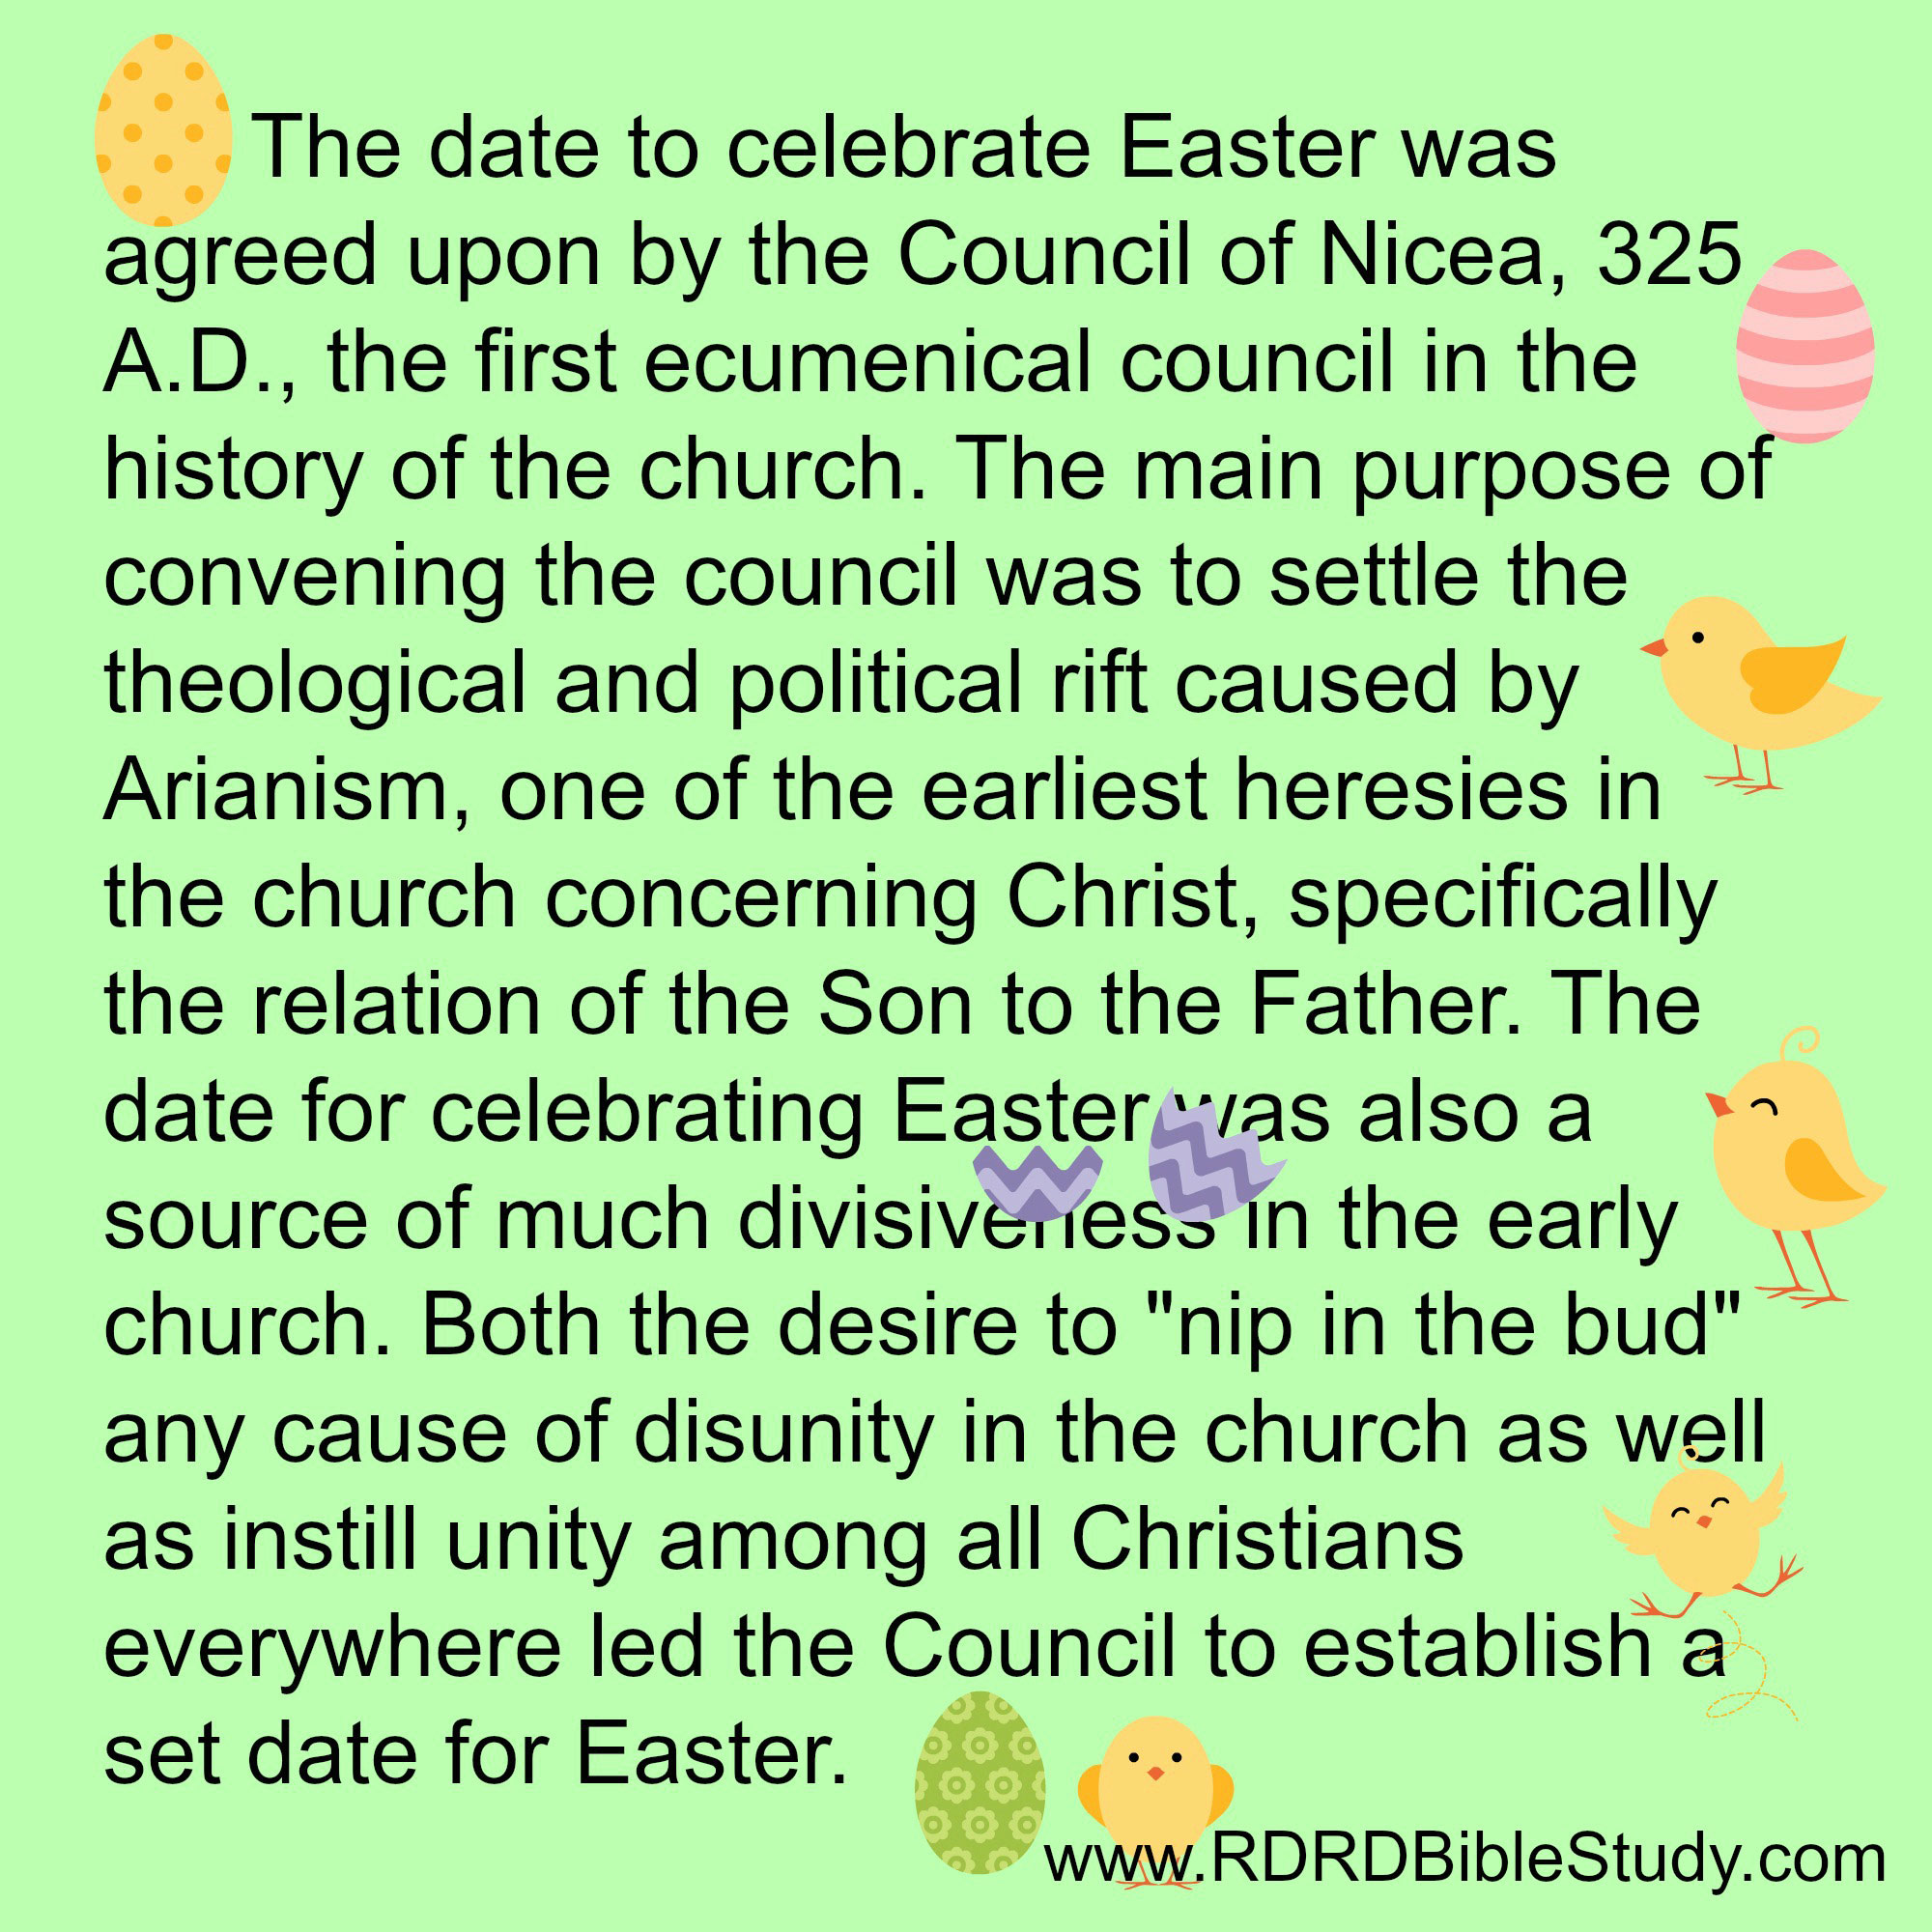 RDRD Bible Study When Easter Council of Nicaea